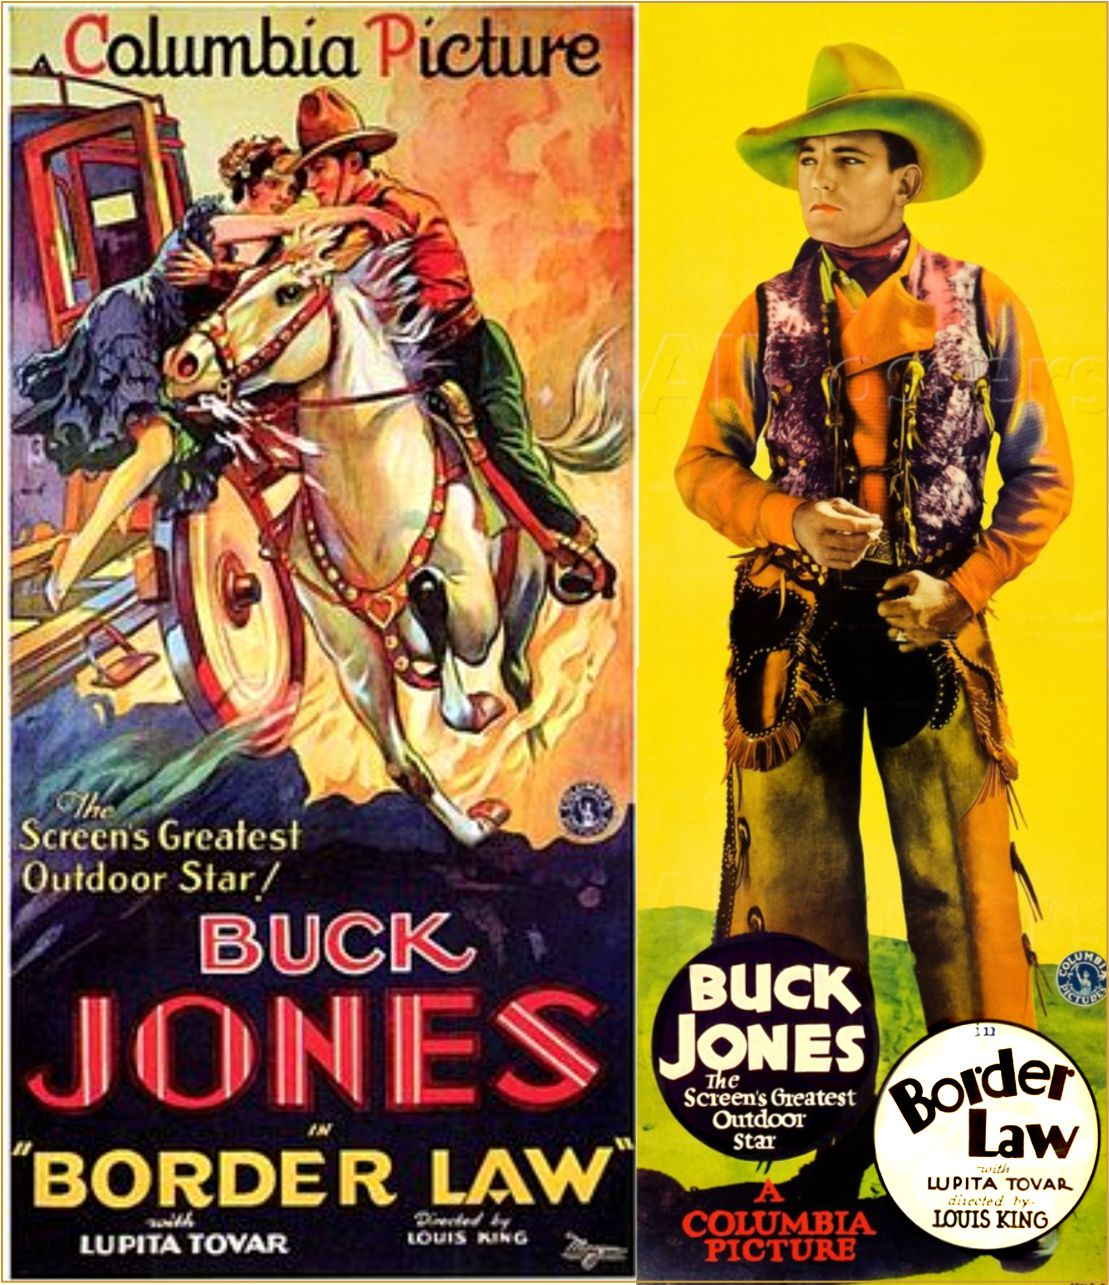 border-law-buck-jones-1930.jpg